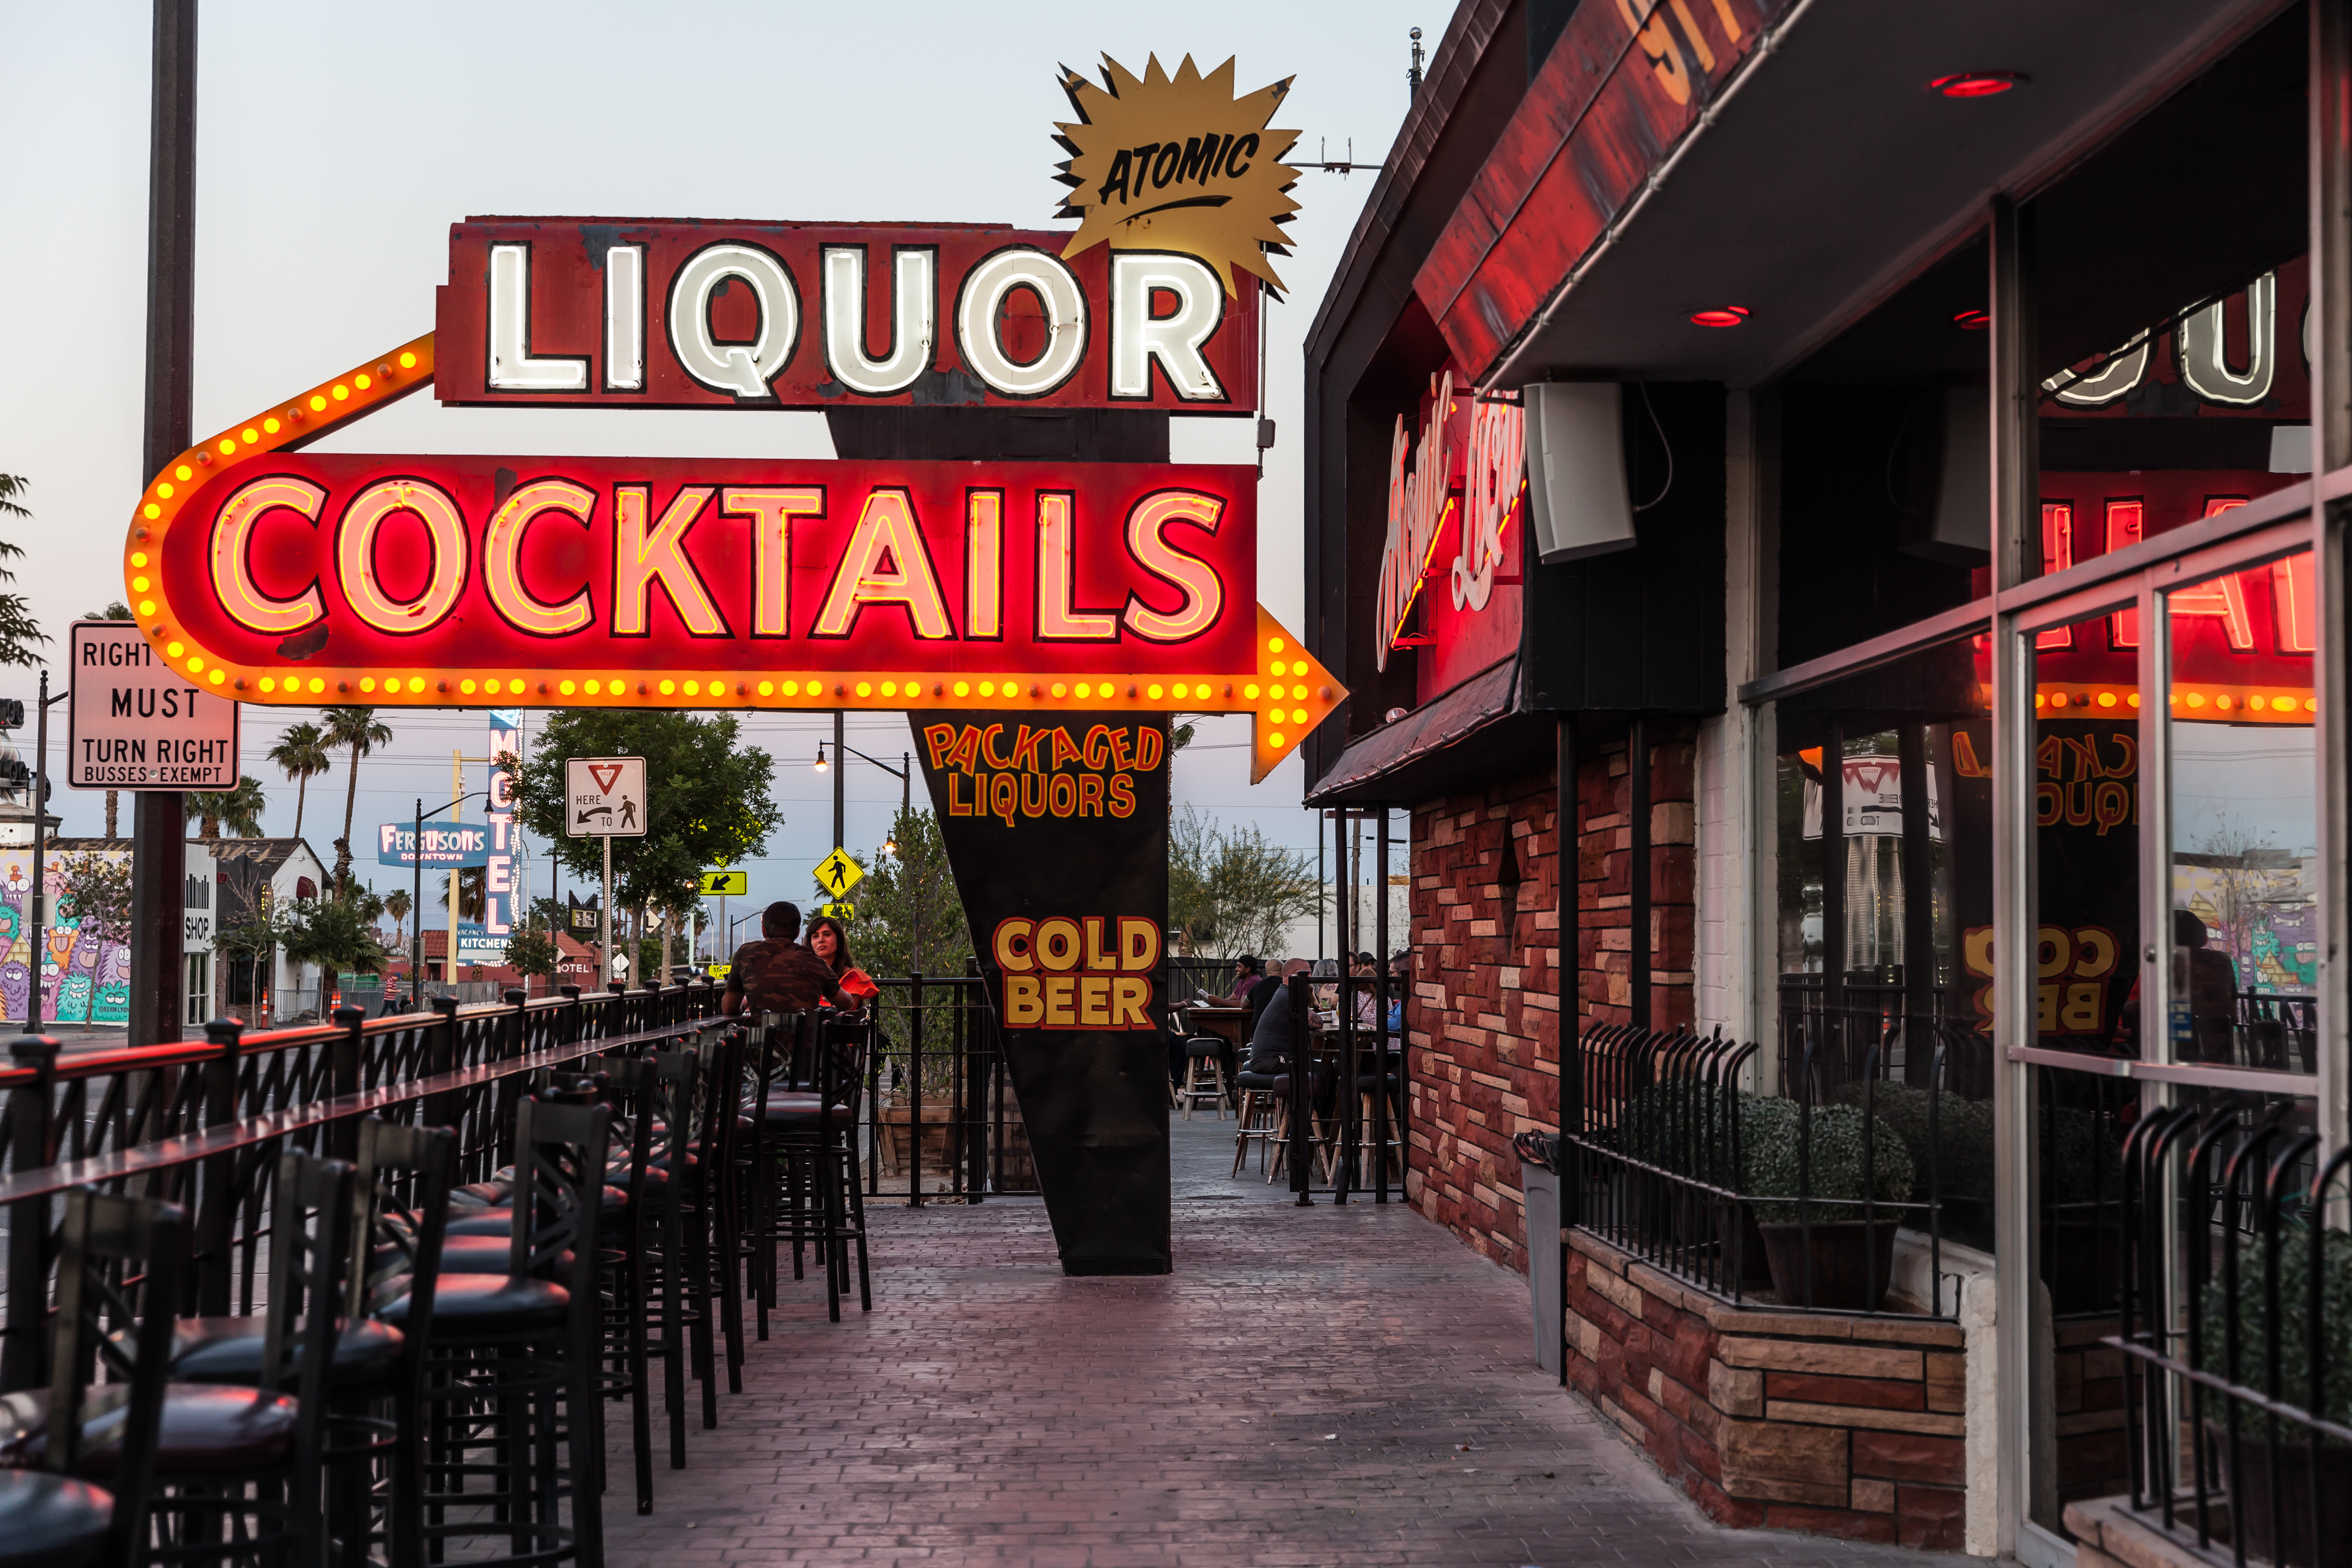 An outdoor patio with a neon sign that says Liquor, Cocktails